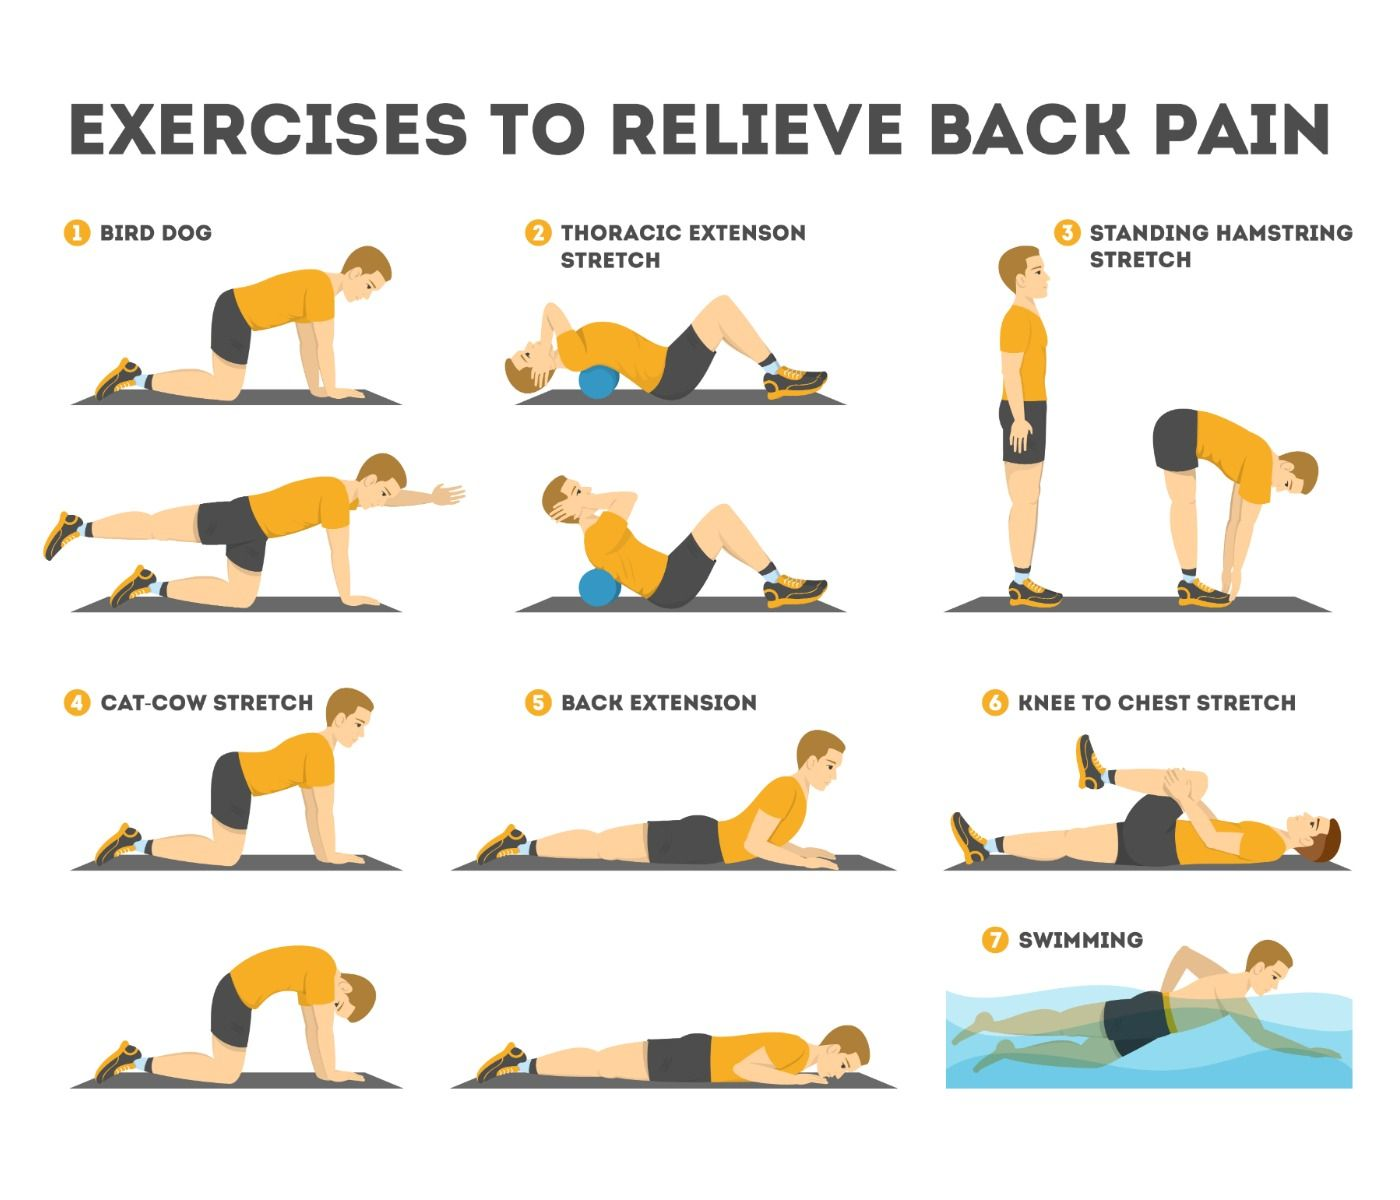 Exercise set to relieve back pain